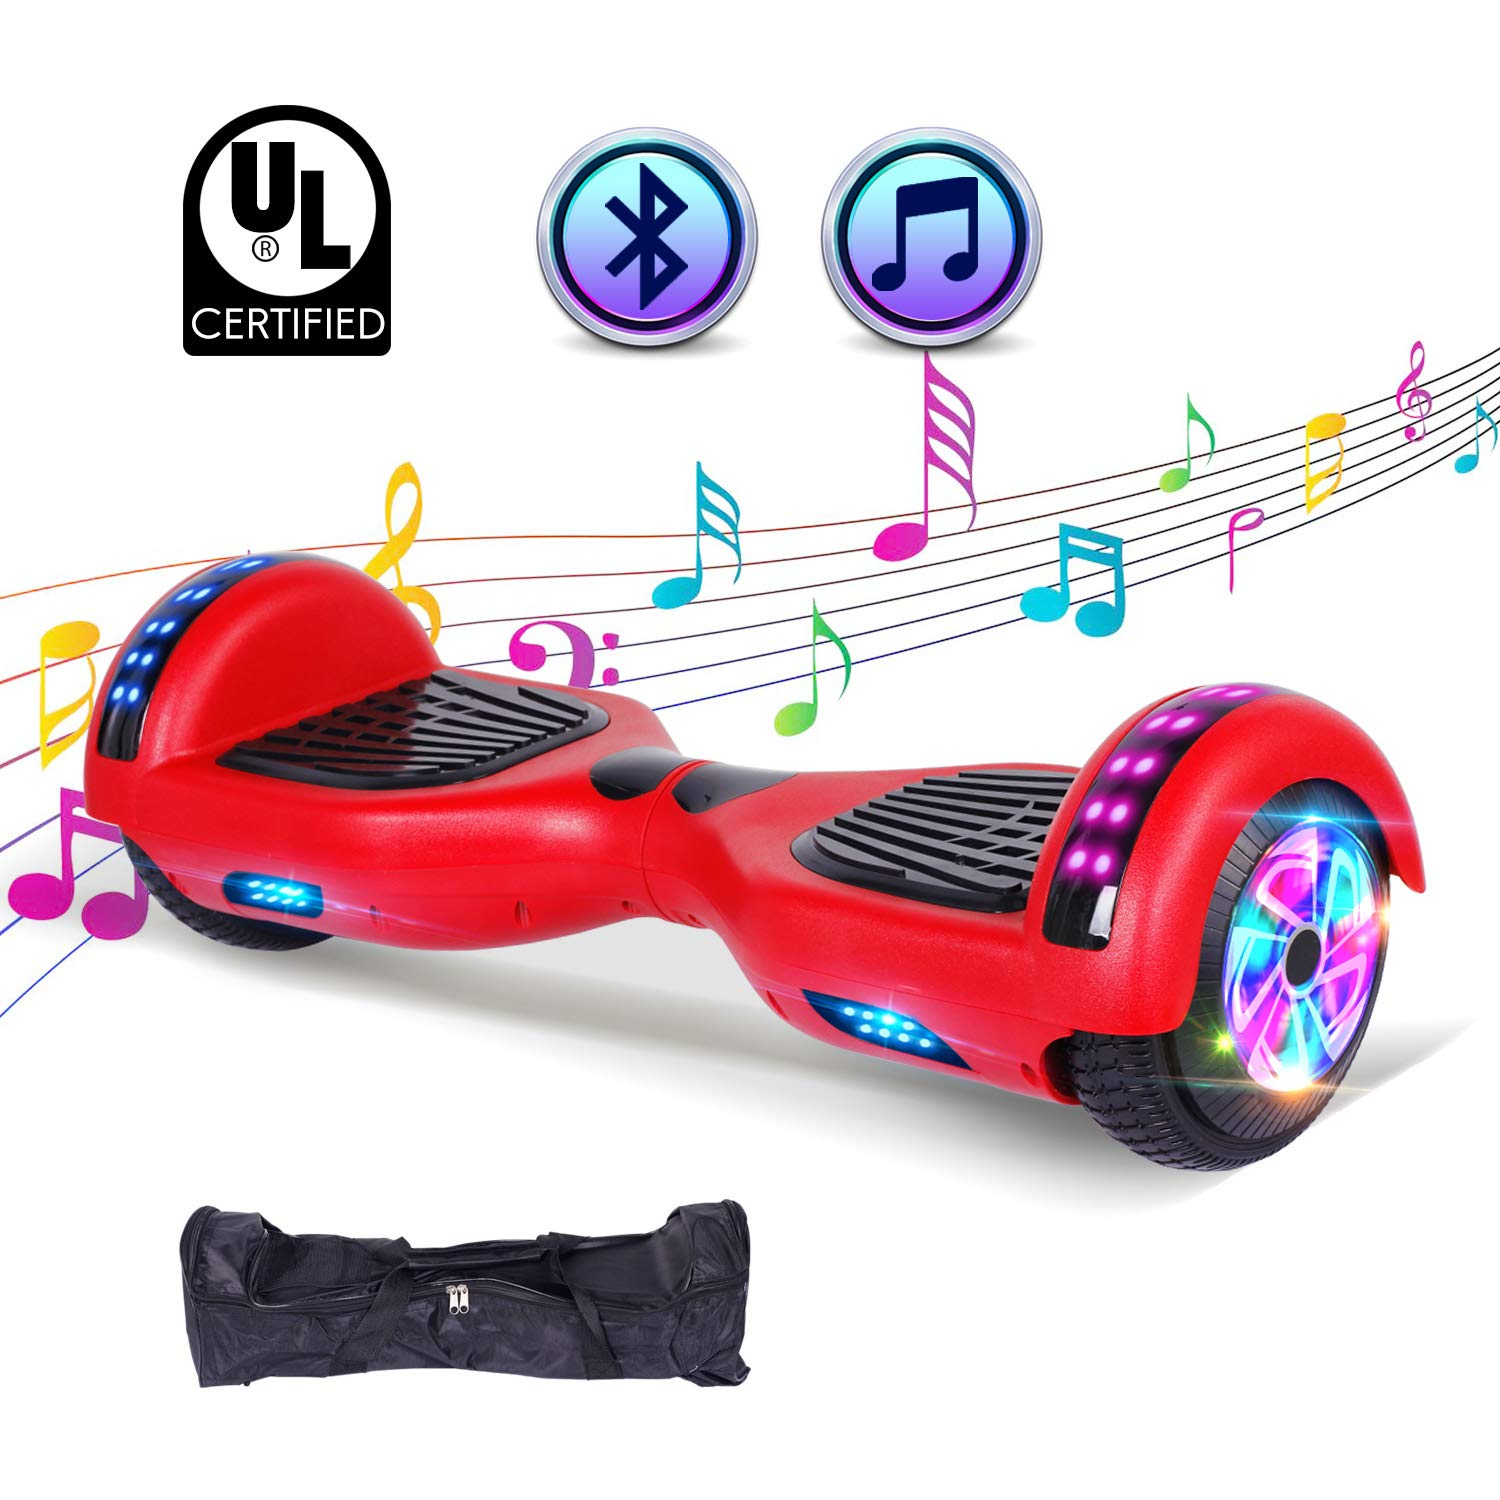 "SWEETBUY Hoverboard UL 2272 Certified 6.5"" Two-Wheel Bluetooth Self Balancing Electric Scooter with LED Light Flash Lights Wheels RED(Free Carry Bag)"